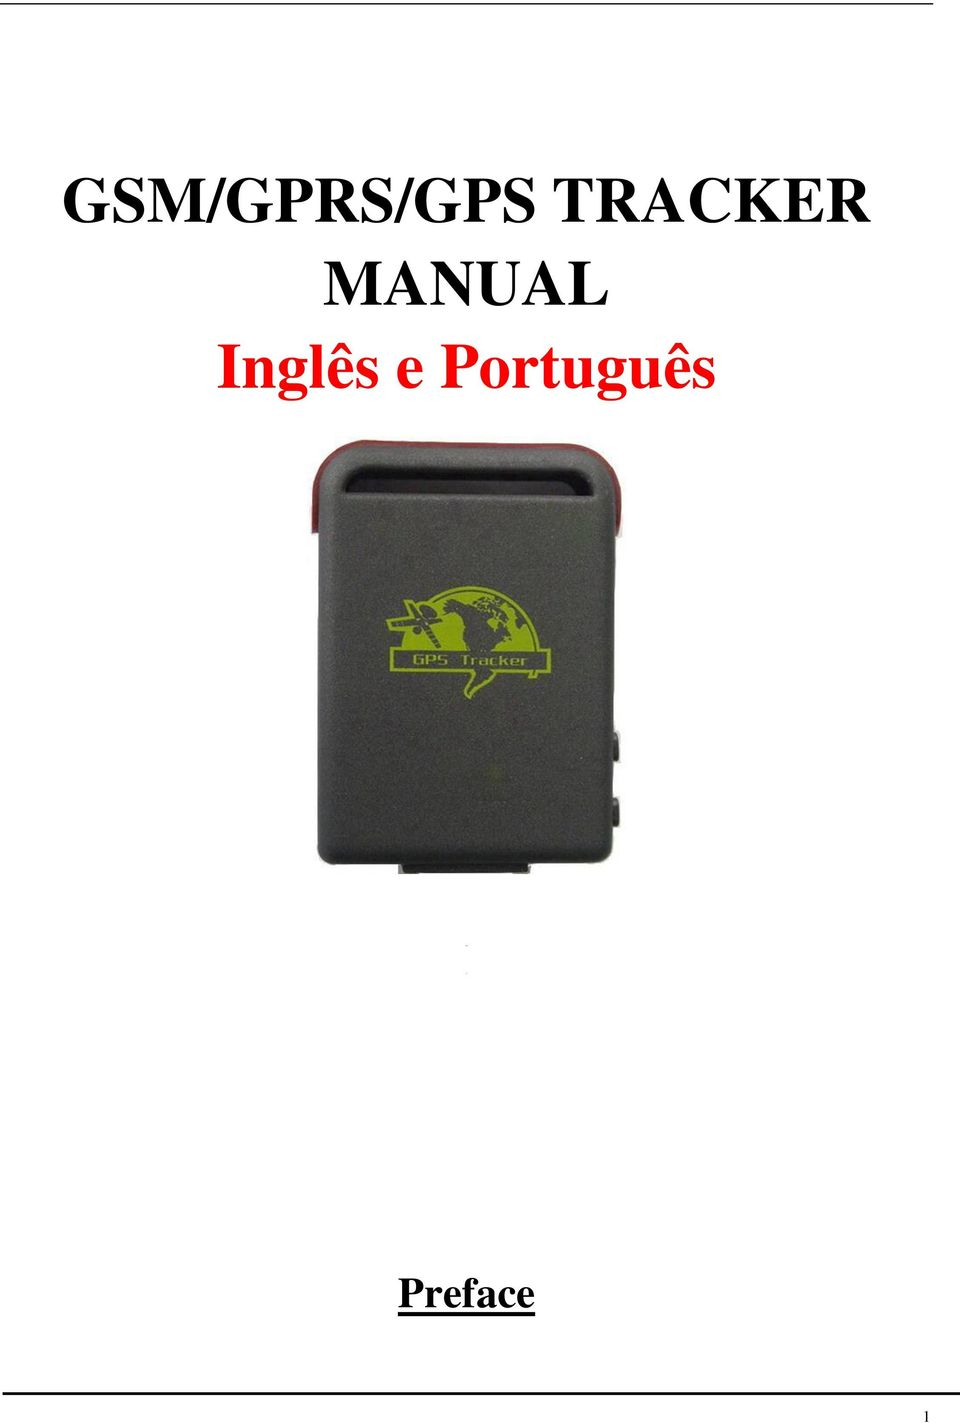 2 Thank you for purchasing the tracker. This manual shows how to operate  the device smoothly and correctly. Make sure to read this manual carefully  before ...